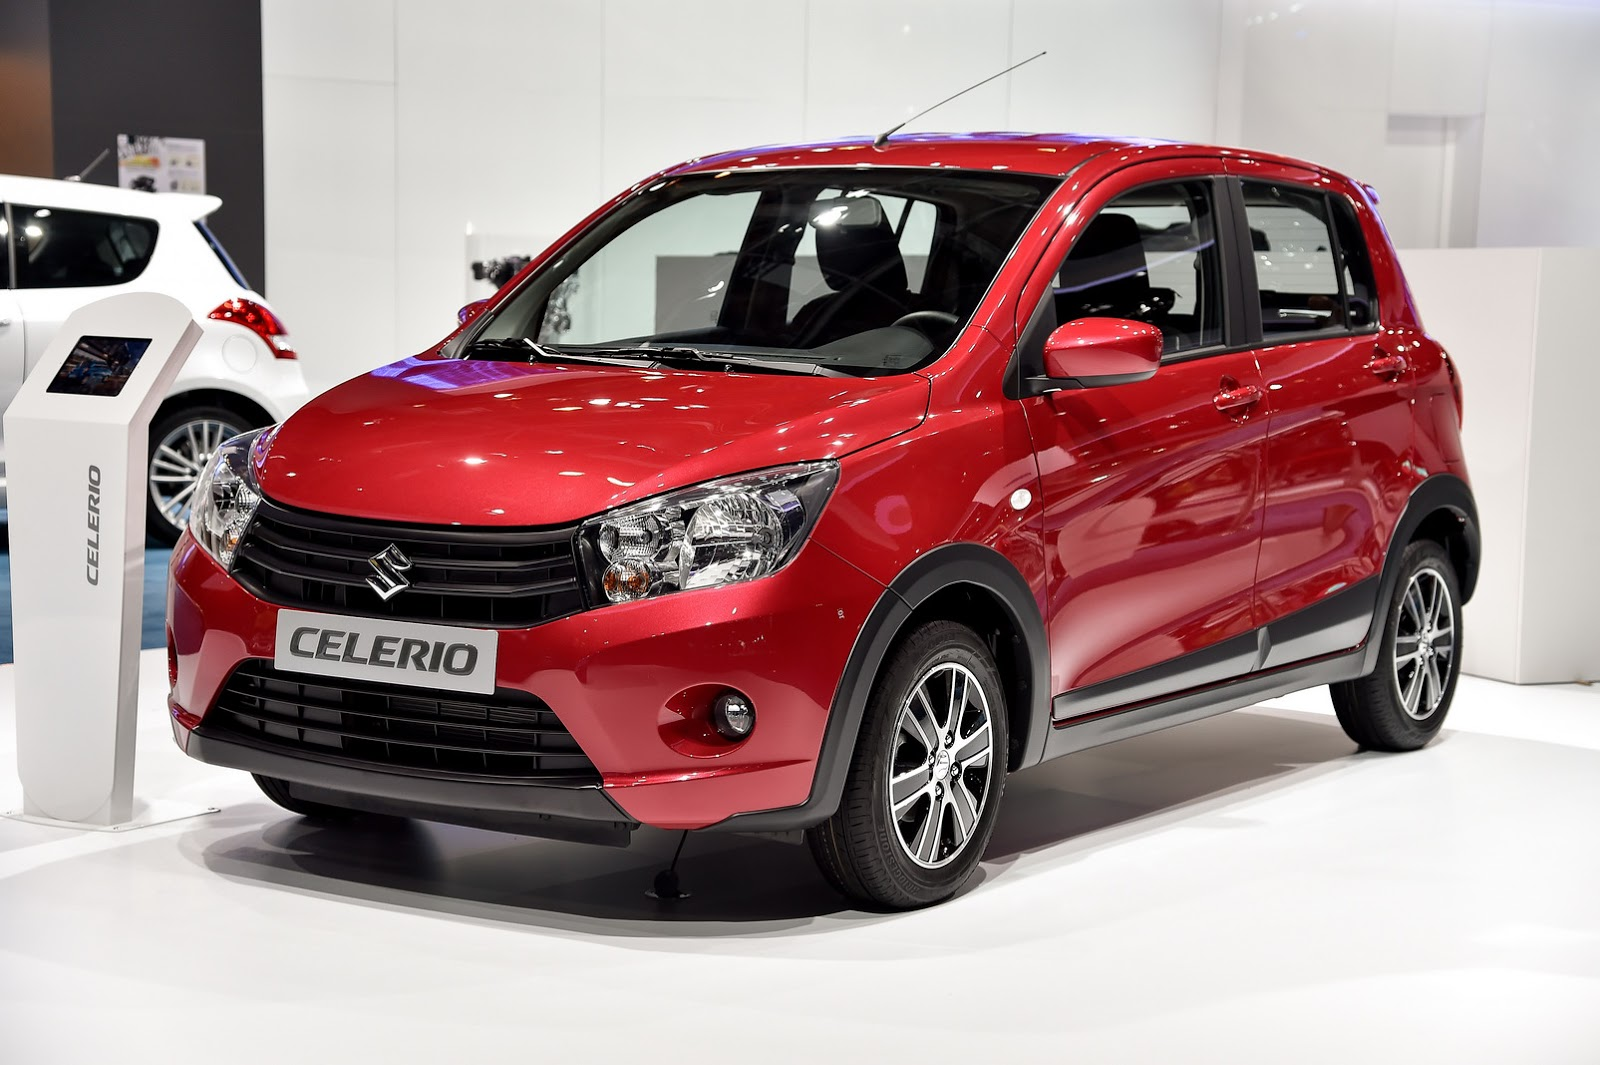 suzuki 39 s new celerio city car from 7 999 in the uk carscoops. Black Bedroom Furniture Sets. Home Design Ideas